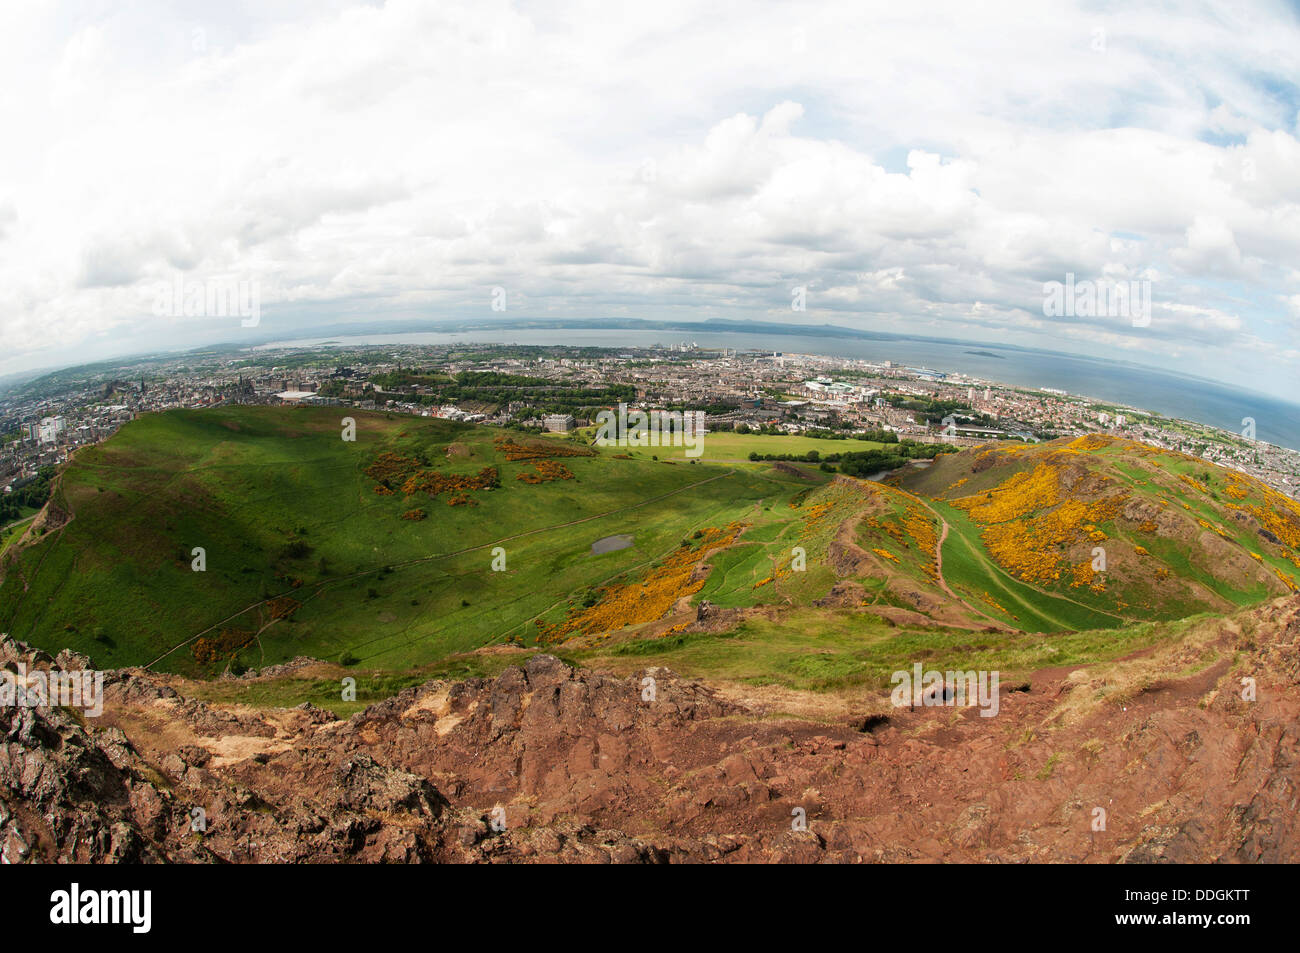 Arthur's Seat is the main peak of the group of hills which form most of Holyrood Park. It is situated in Edinburgh. - Stock Image